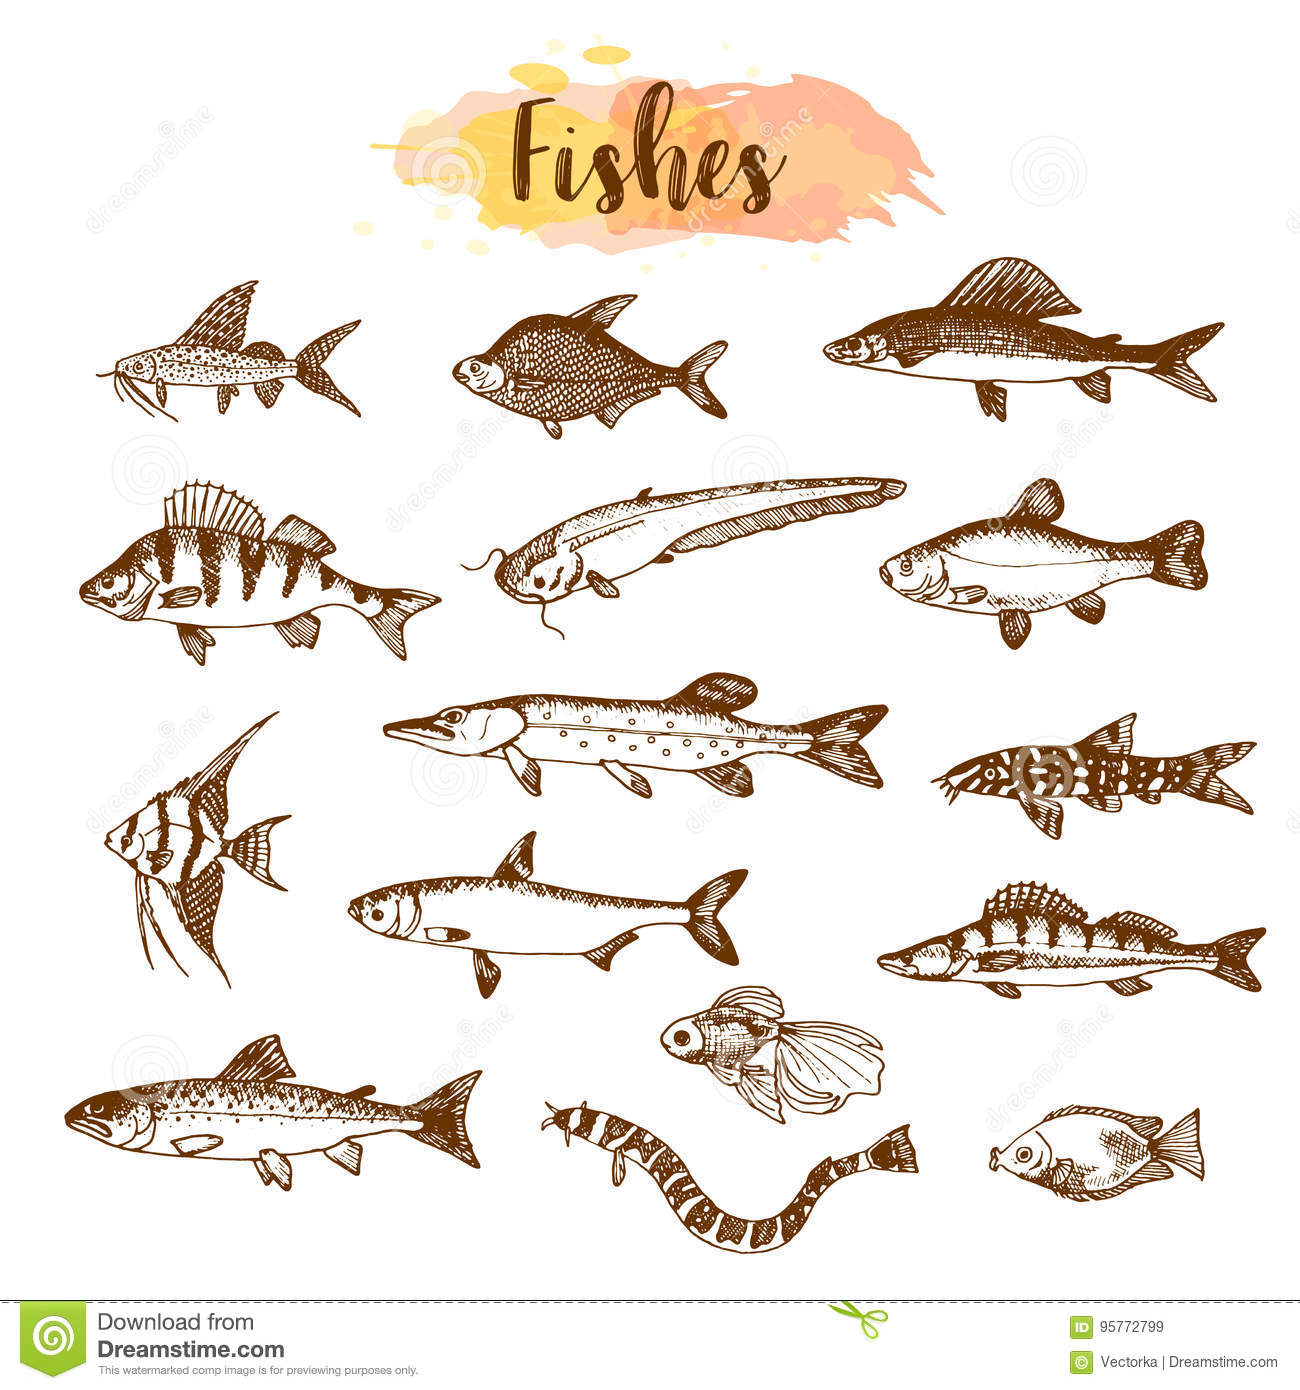 types of ocean fish. fish sorts and types. hand drawn vector illustrations. lake in line art style. sea ocean creatures for types of d